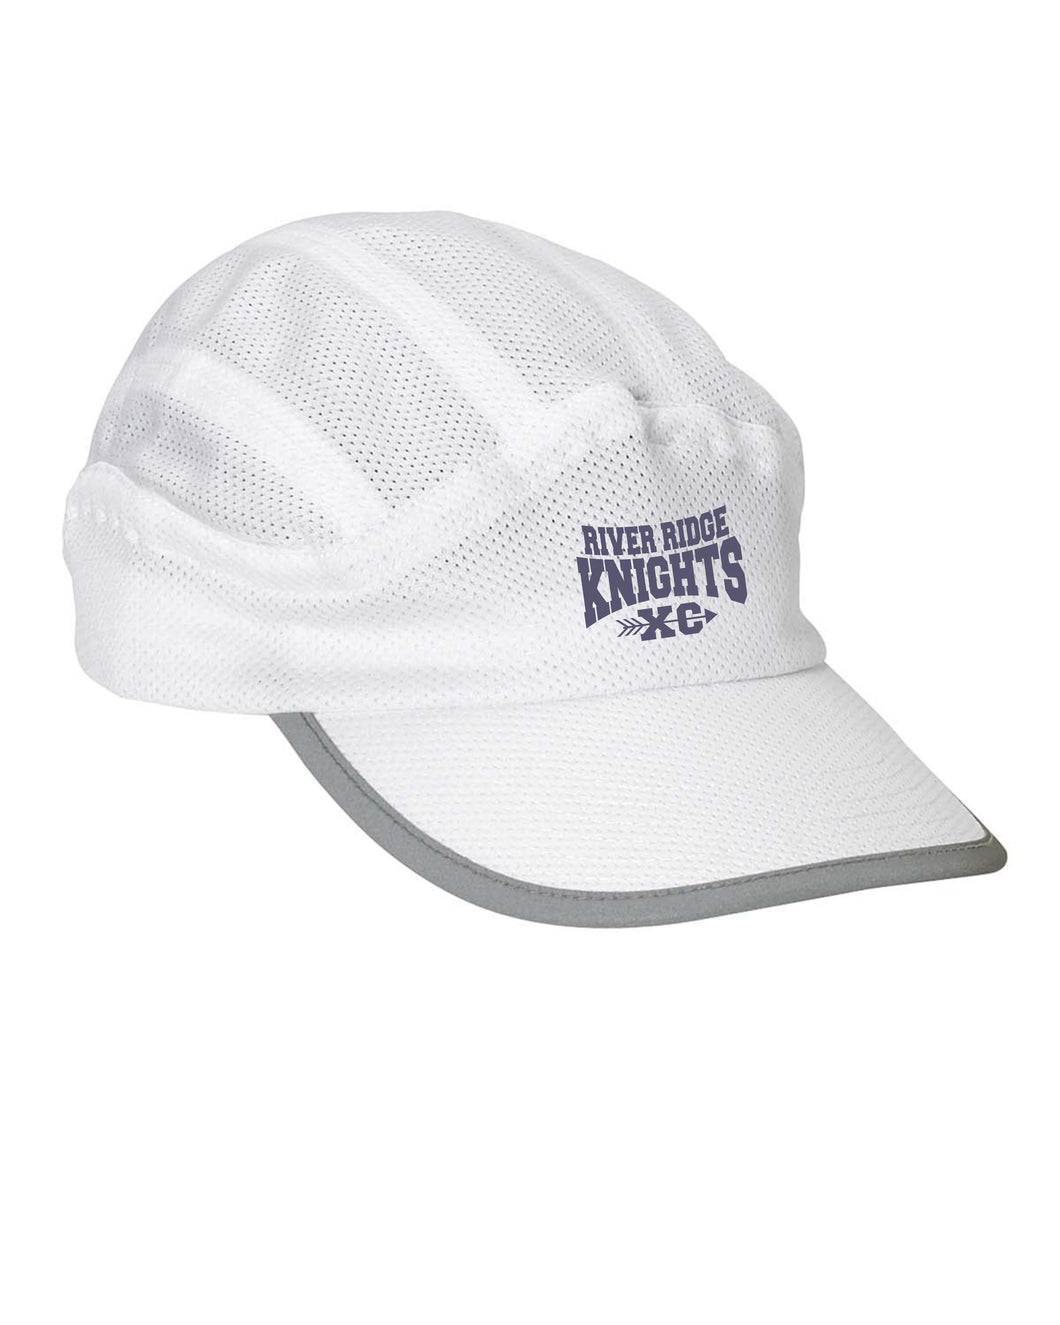 Item RR-XC-907-1 - Big Accessories Mesh Runner Cap - River Ridge KNIGHTS XC Logo